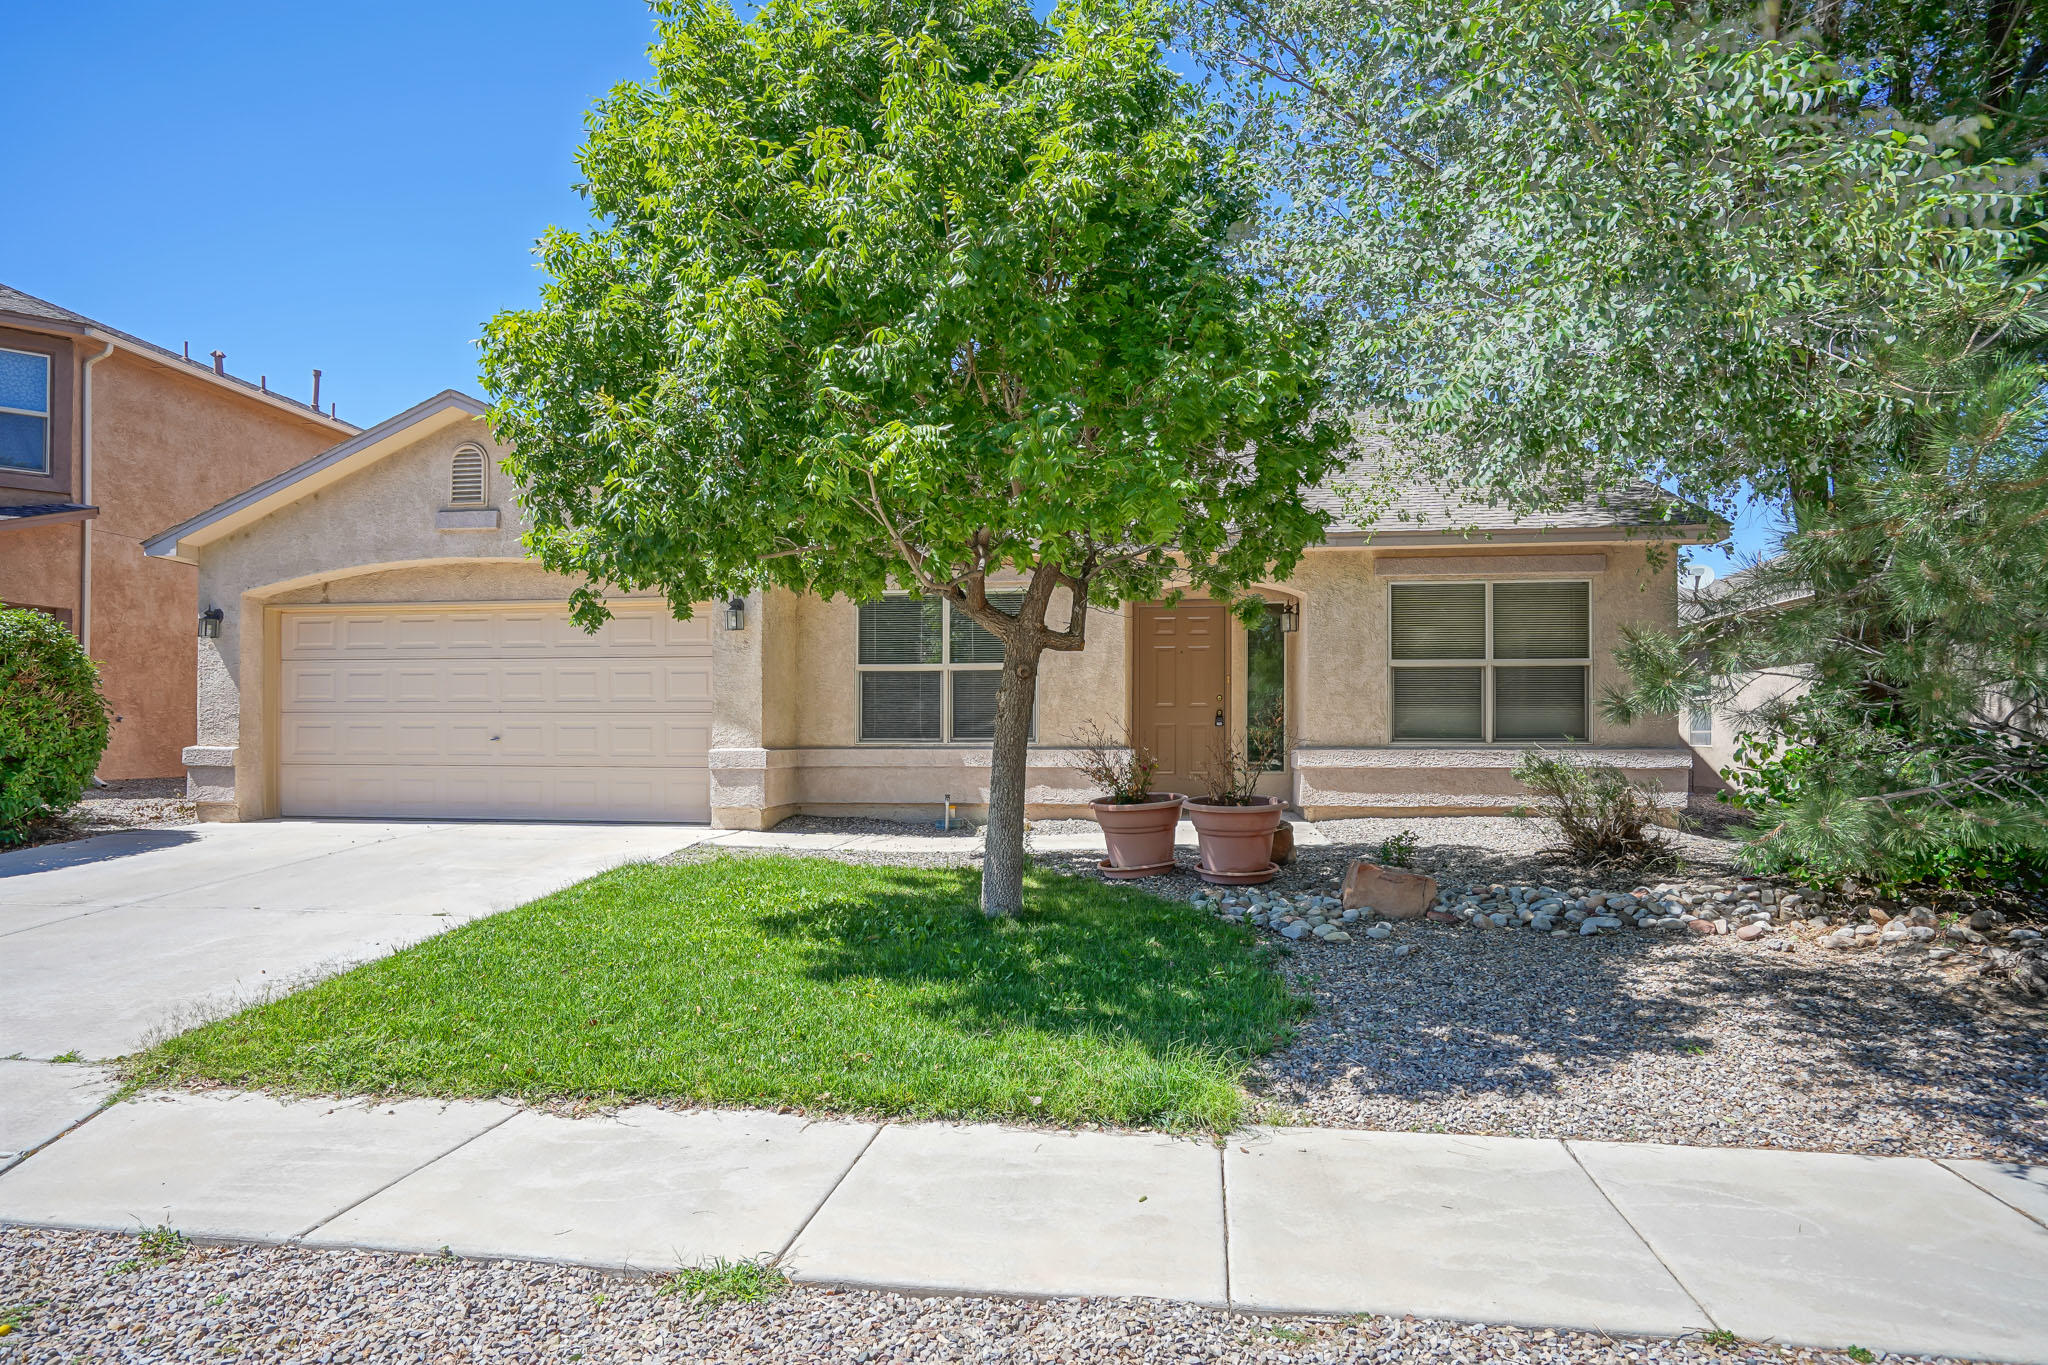 Welcome to this beautiful single story home in Ventana Ranch West. FRESHLY PAINTED & NEW CARPET was installed. 2 living areas, 3 bedrooms & an spacious office. Kitchen is open to the family room which has built in shelving & a gas log fireplace. The kitchen has lots of counter space & maple cabinetry, island with bar, recessed lighting, self cleaning oven, built in microwave, refrigerator & breakfast nook.  A spacious owner suite has a double door entry, walk in closet, bath with glass block accents, separate shower & garden tub. Refrigerated air, vaulted ceilings, arched doorways, plant ledges & ceiling fans throughout. Double sinks in the hall bath. Washer & dryer  convey. Relax at the end of the day on your private back covered patio & low maintenance backyard..